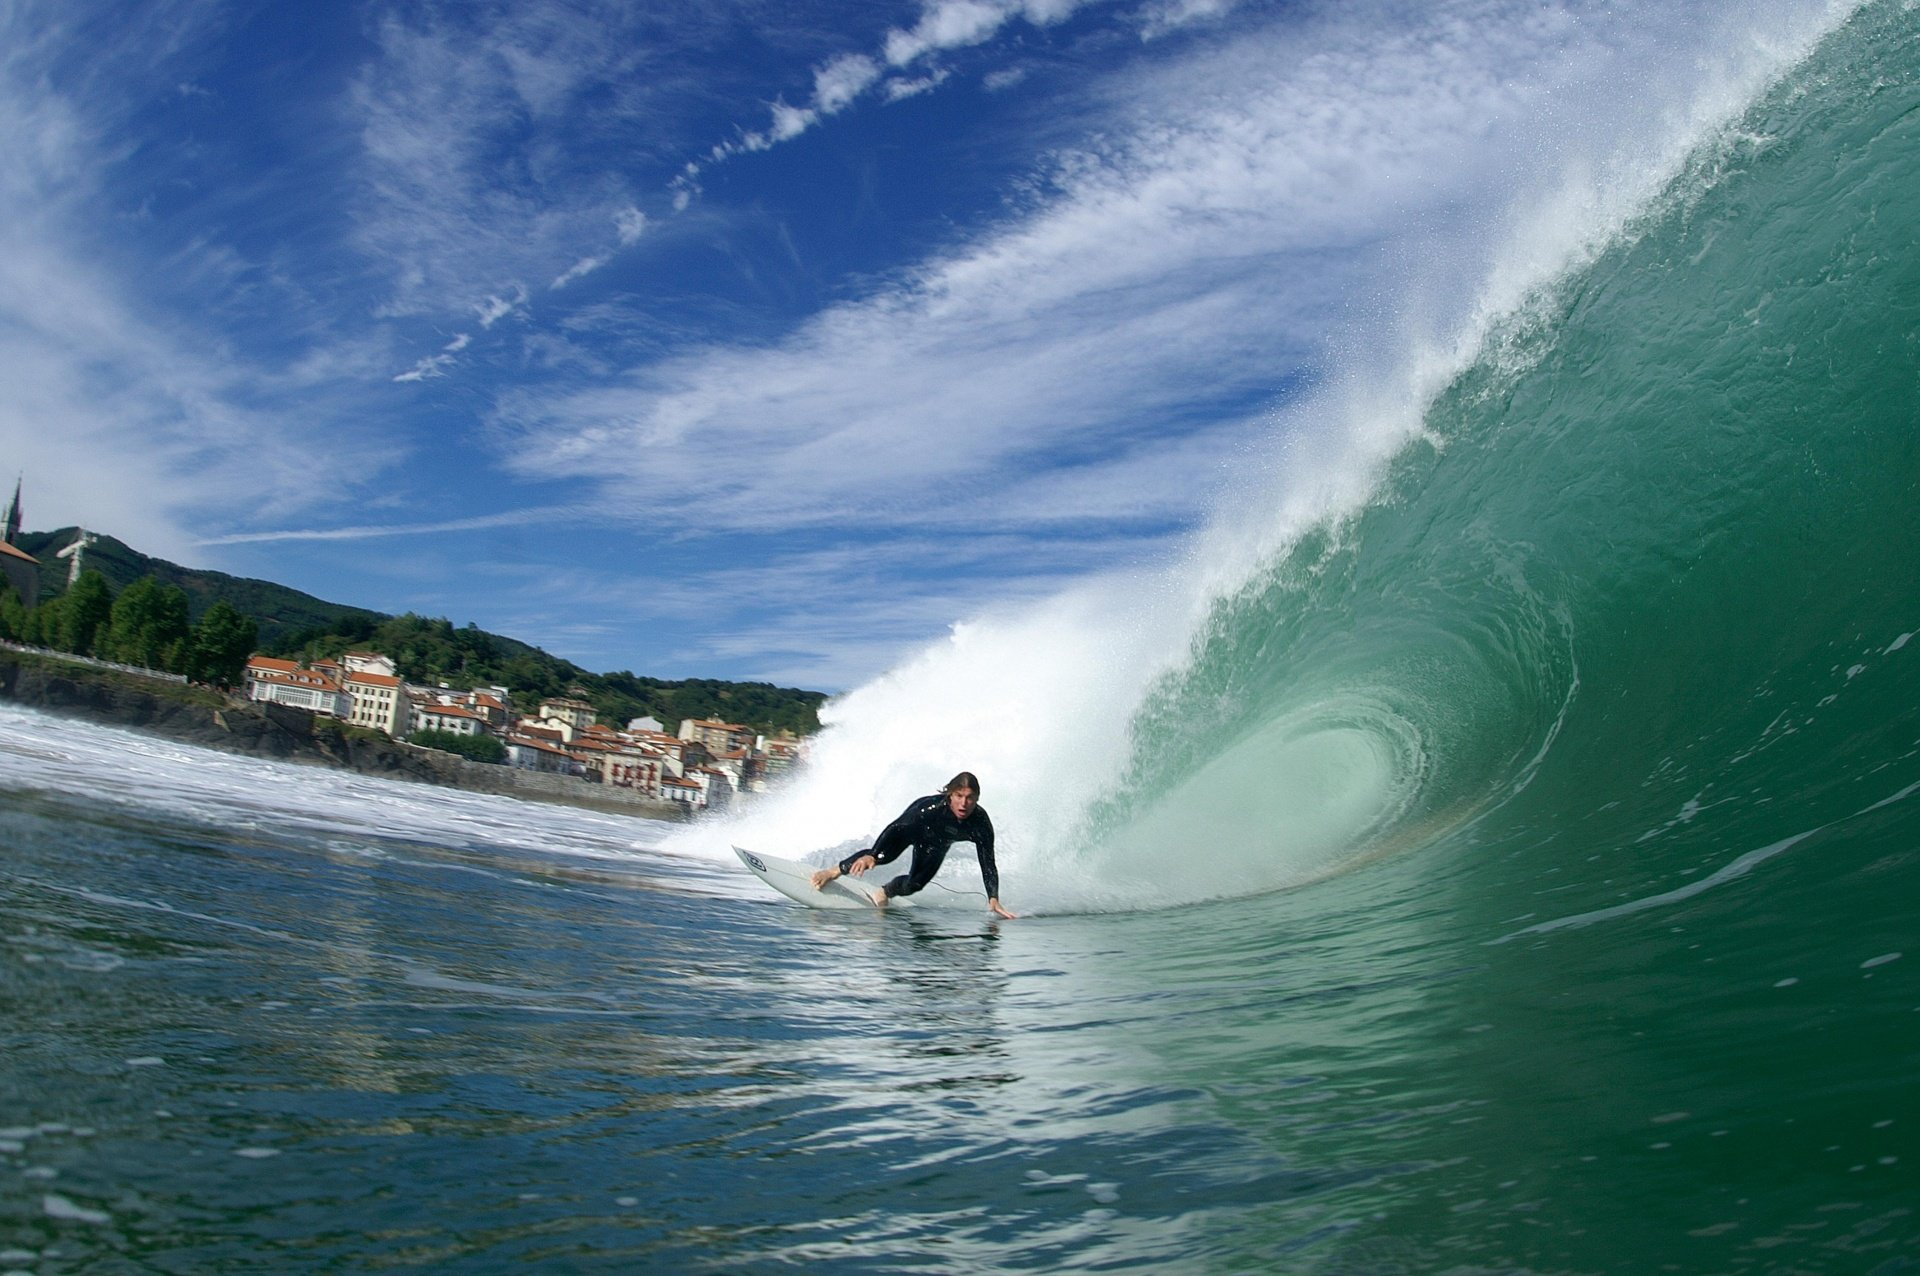 cedricdebarros.com's photo of Mundaka